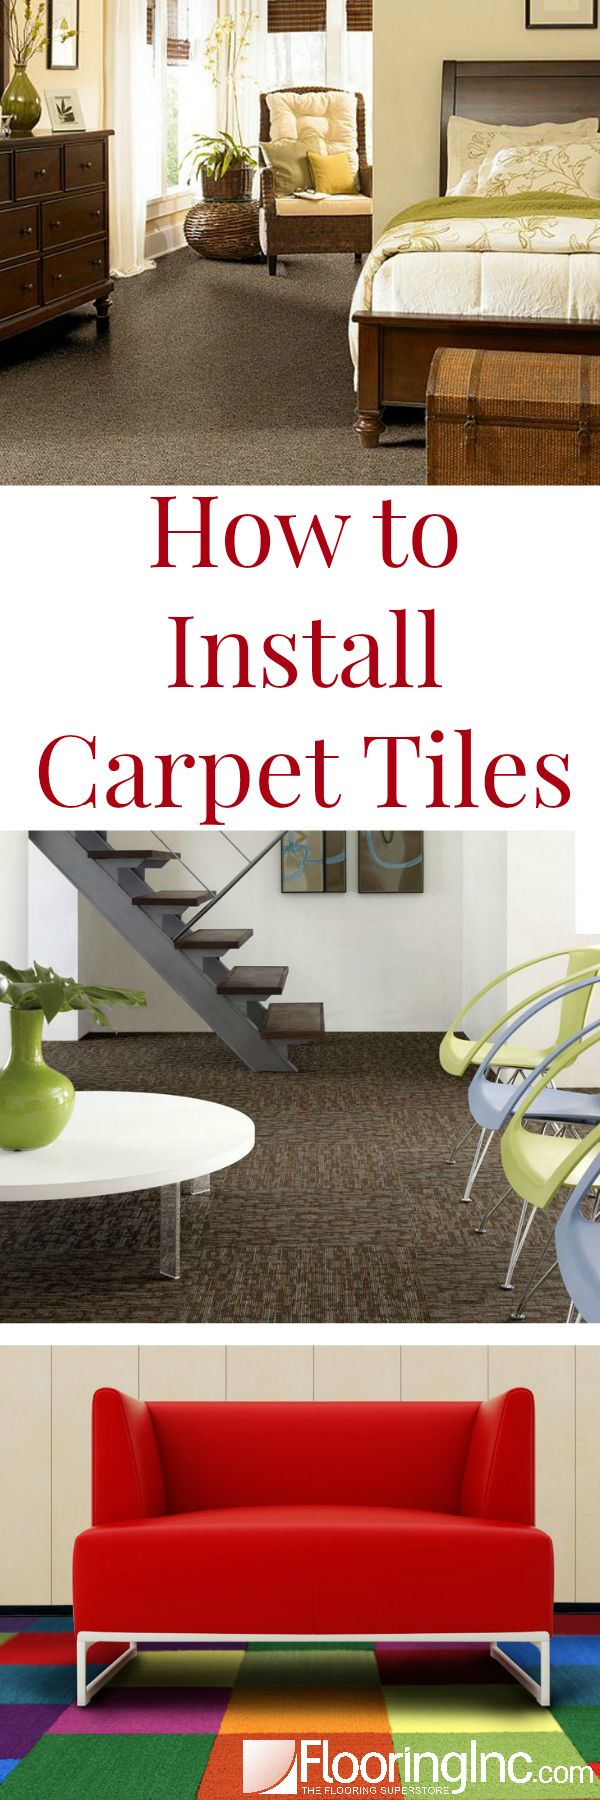 Harley color carpet tiles - How To Install Carpet Tiles In 4 Easy Steps